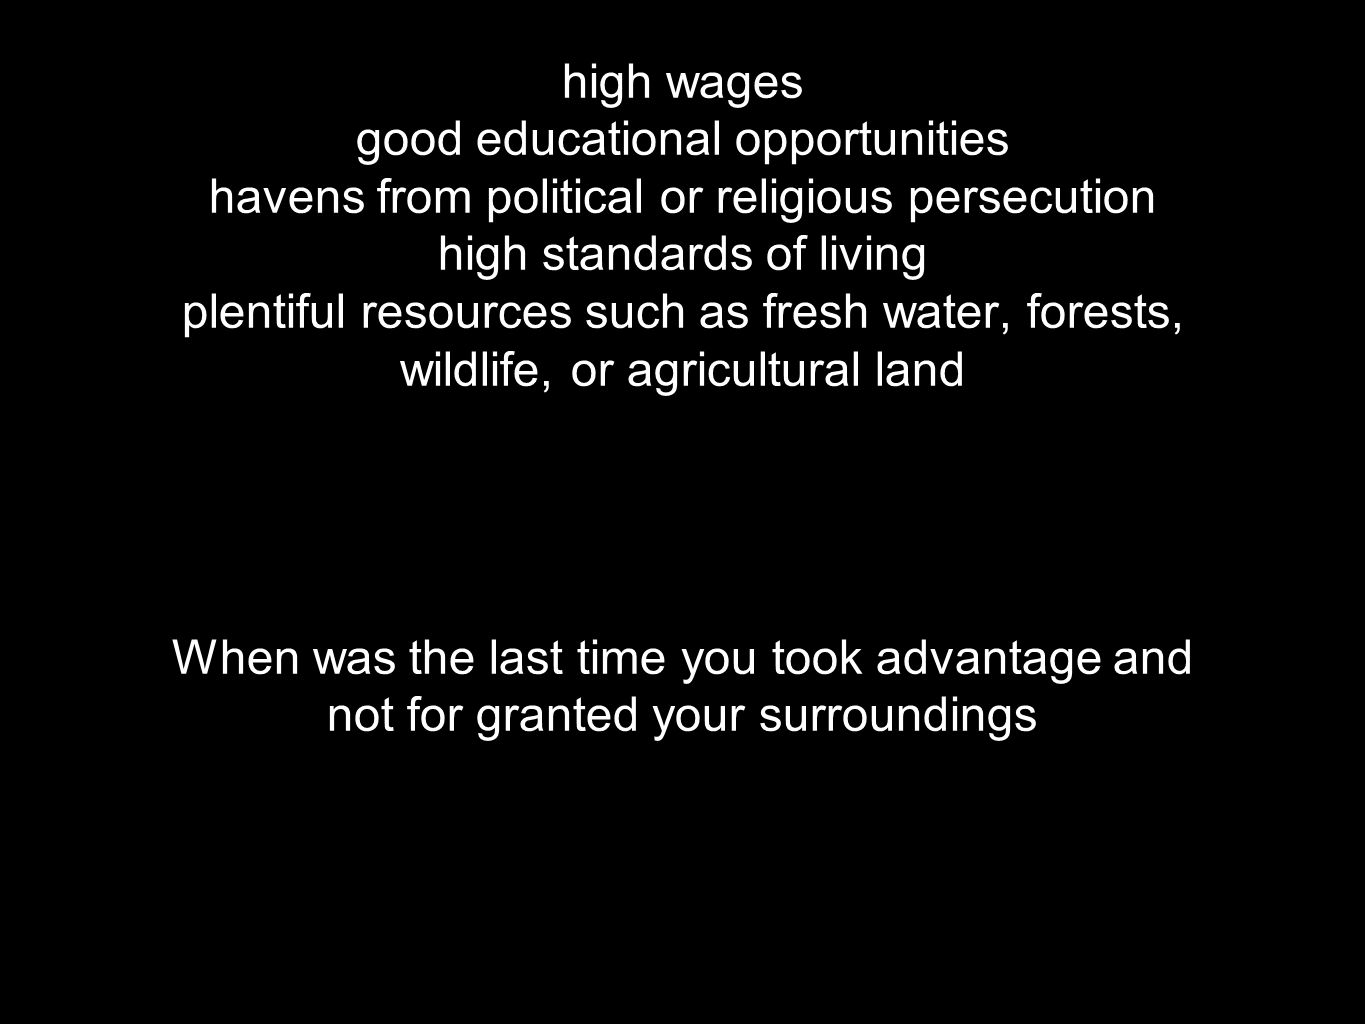 high wages good educational opportunities havens from political or religious persecution high standards of living plentiful resources such as fresh water, forests, wildlife, or agricultural land When was the last time you took advantage and not for granted your surroundings